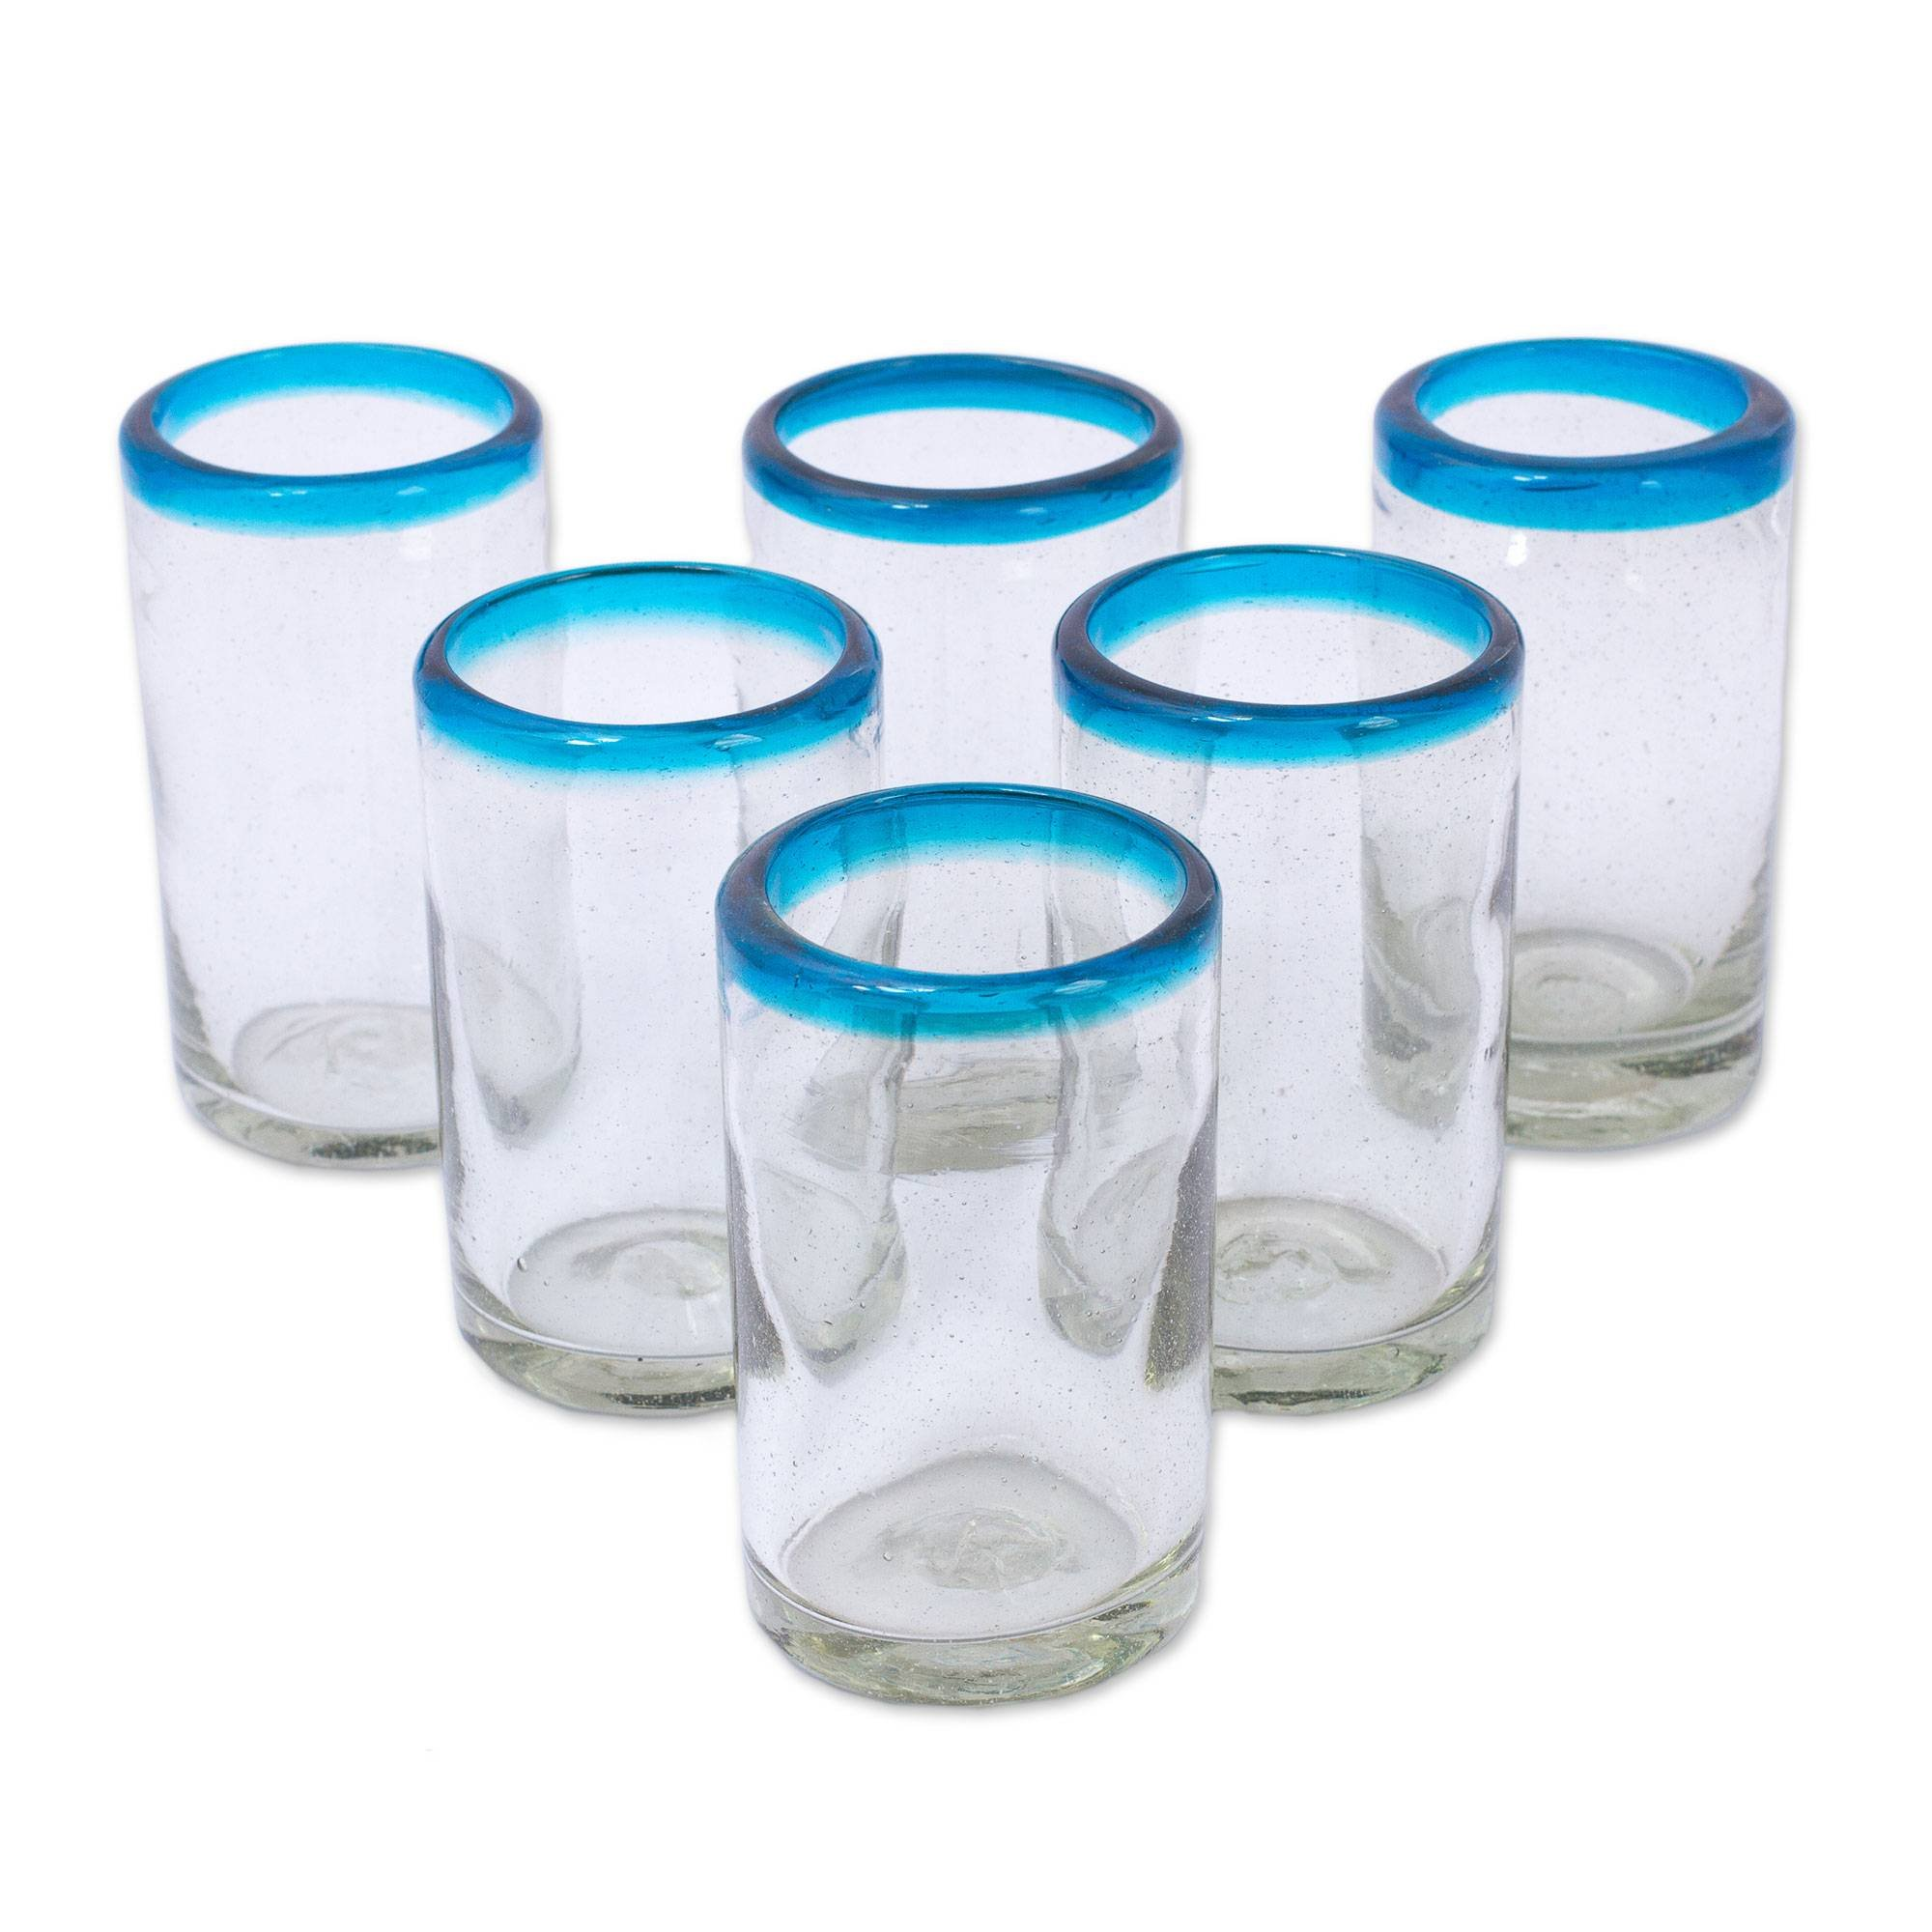 NOVICA 'Sky Blue Halos' Hand Blown Glass Tumblers, 8 Ounces, Clear with Turquoise Blue Rim (Set of 6) by NOVICA (Image #1)